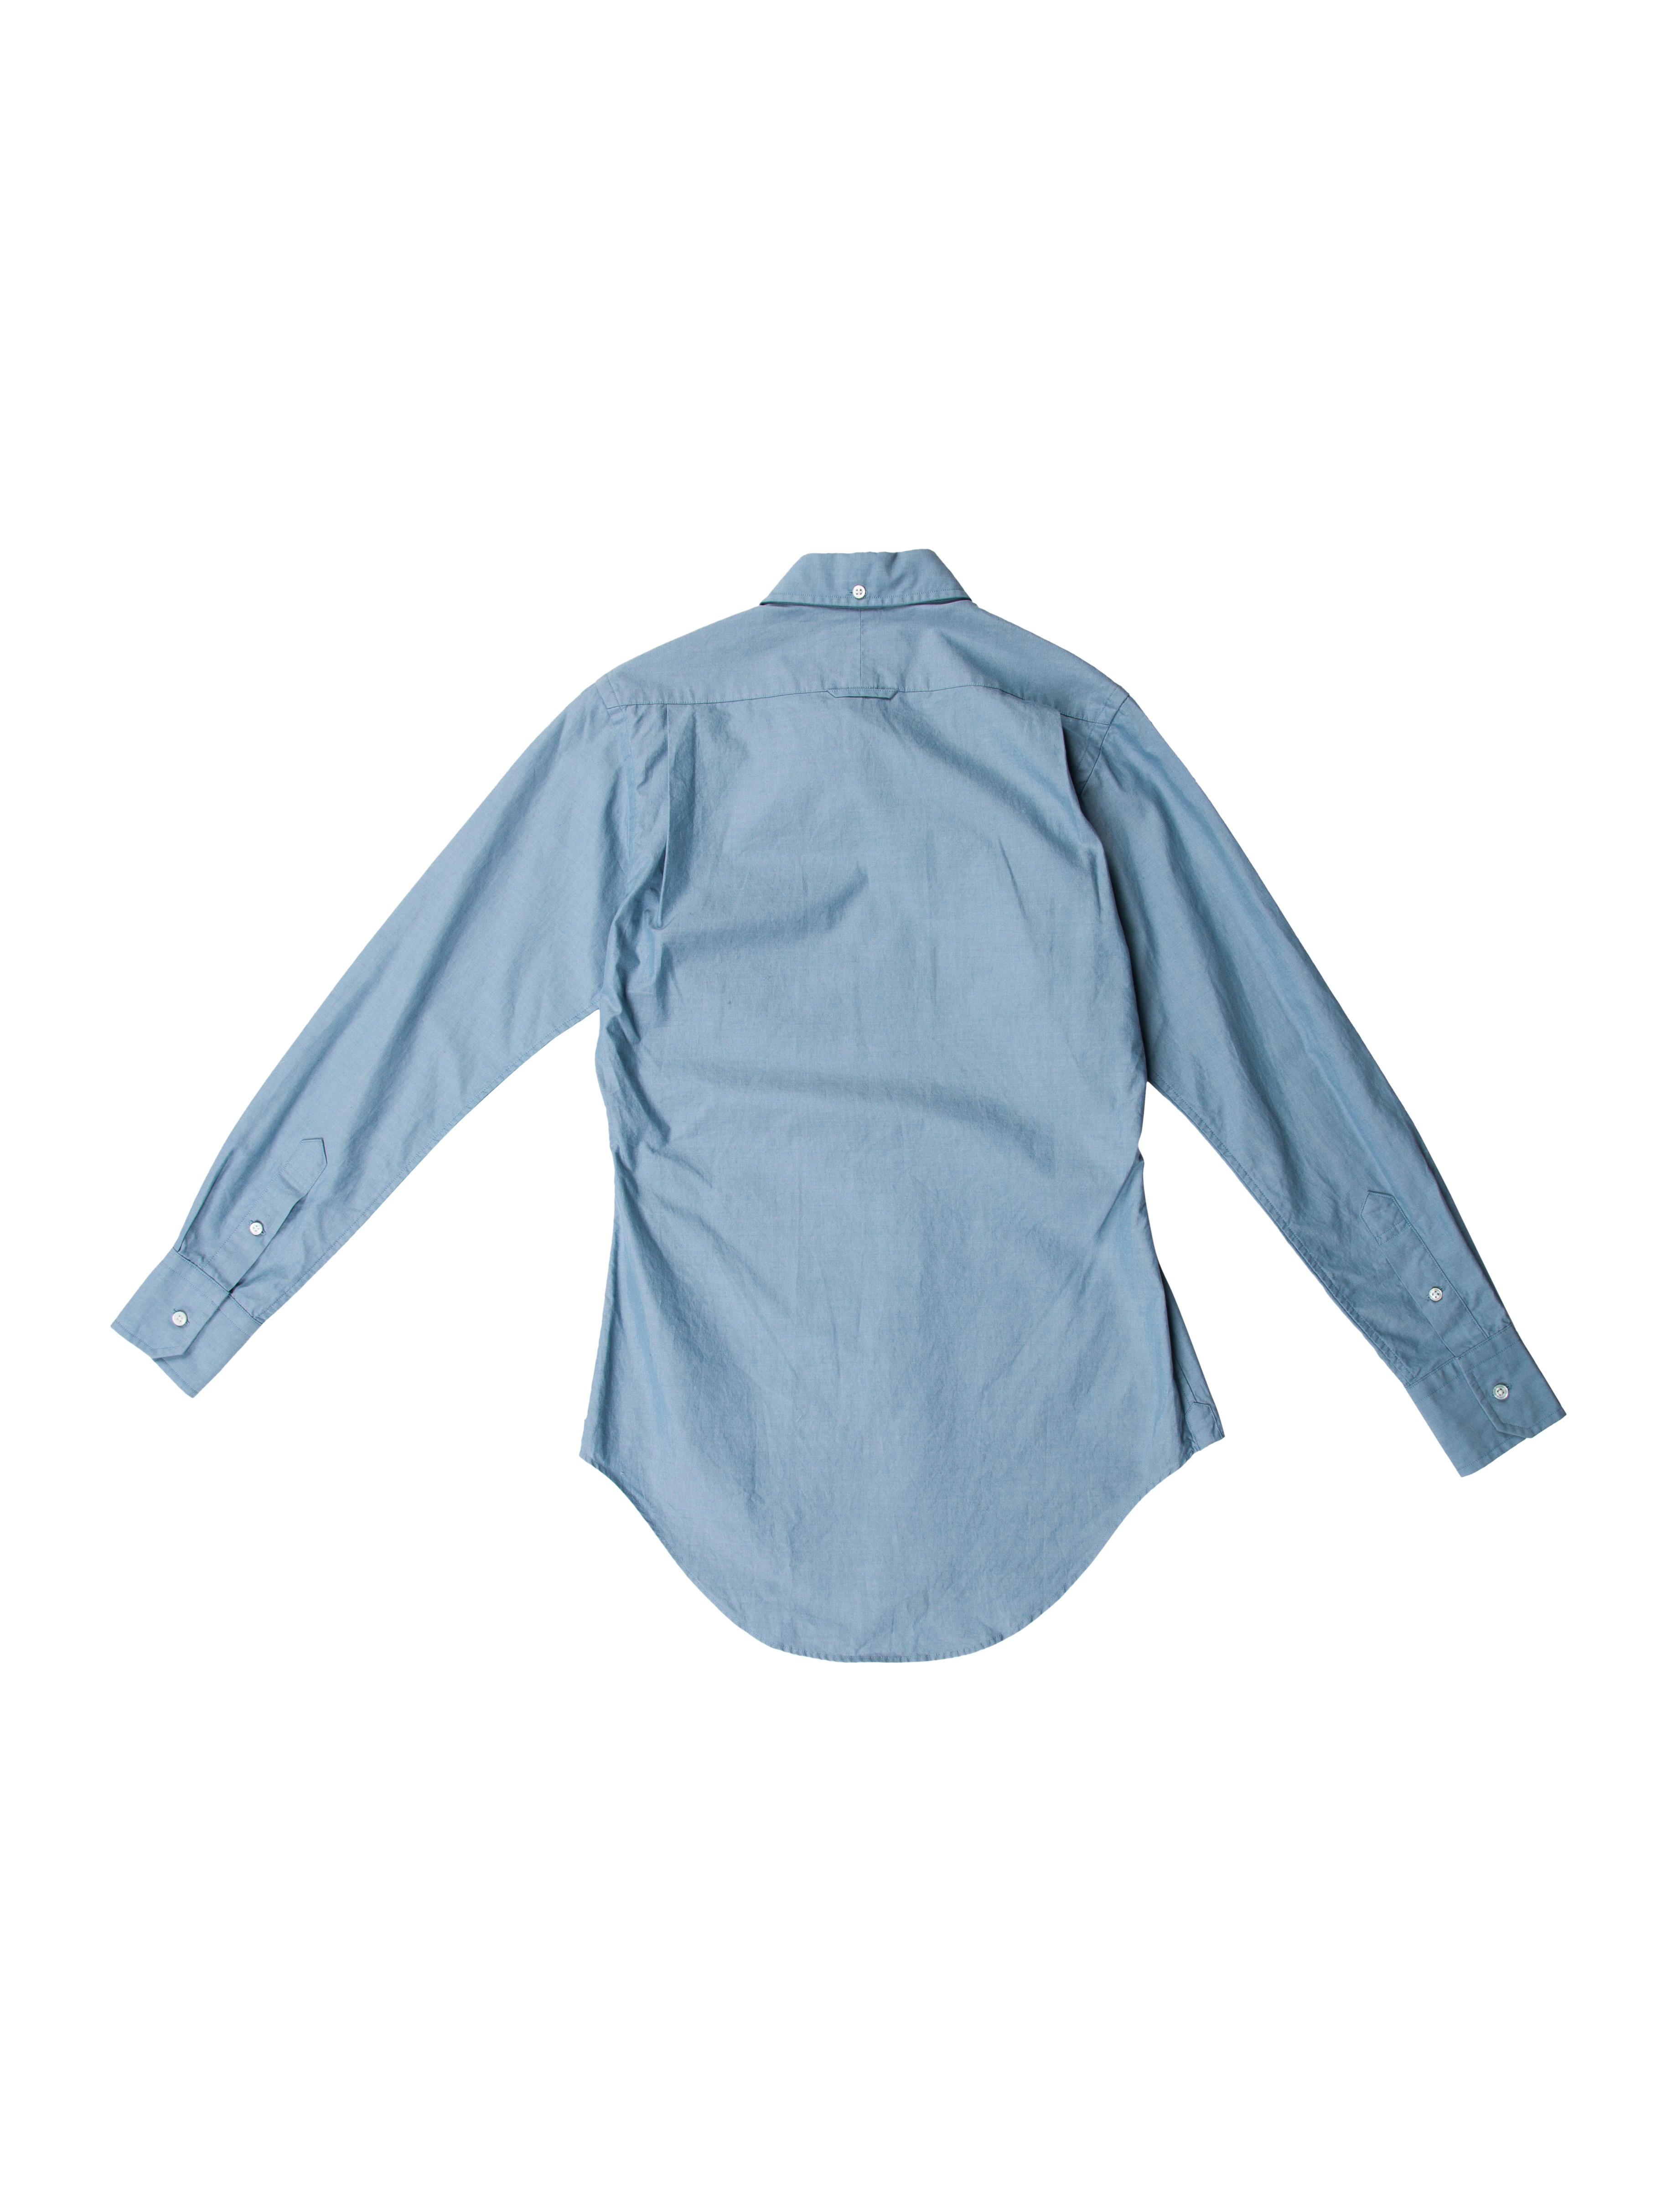 Thom Browne Long Sleeve Button Up Shirt Clothing